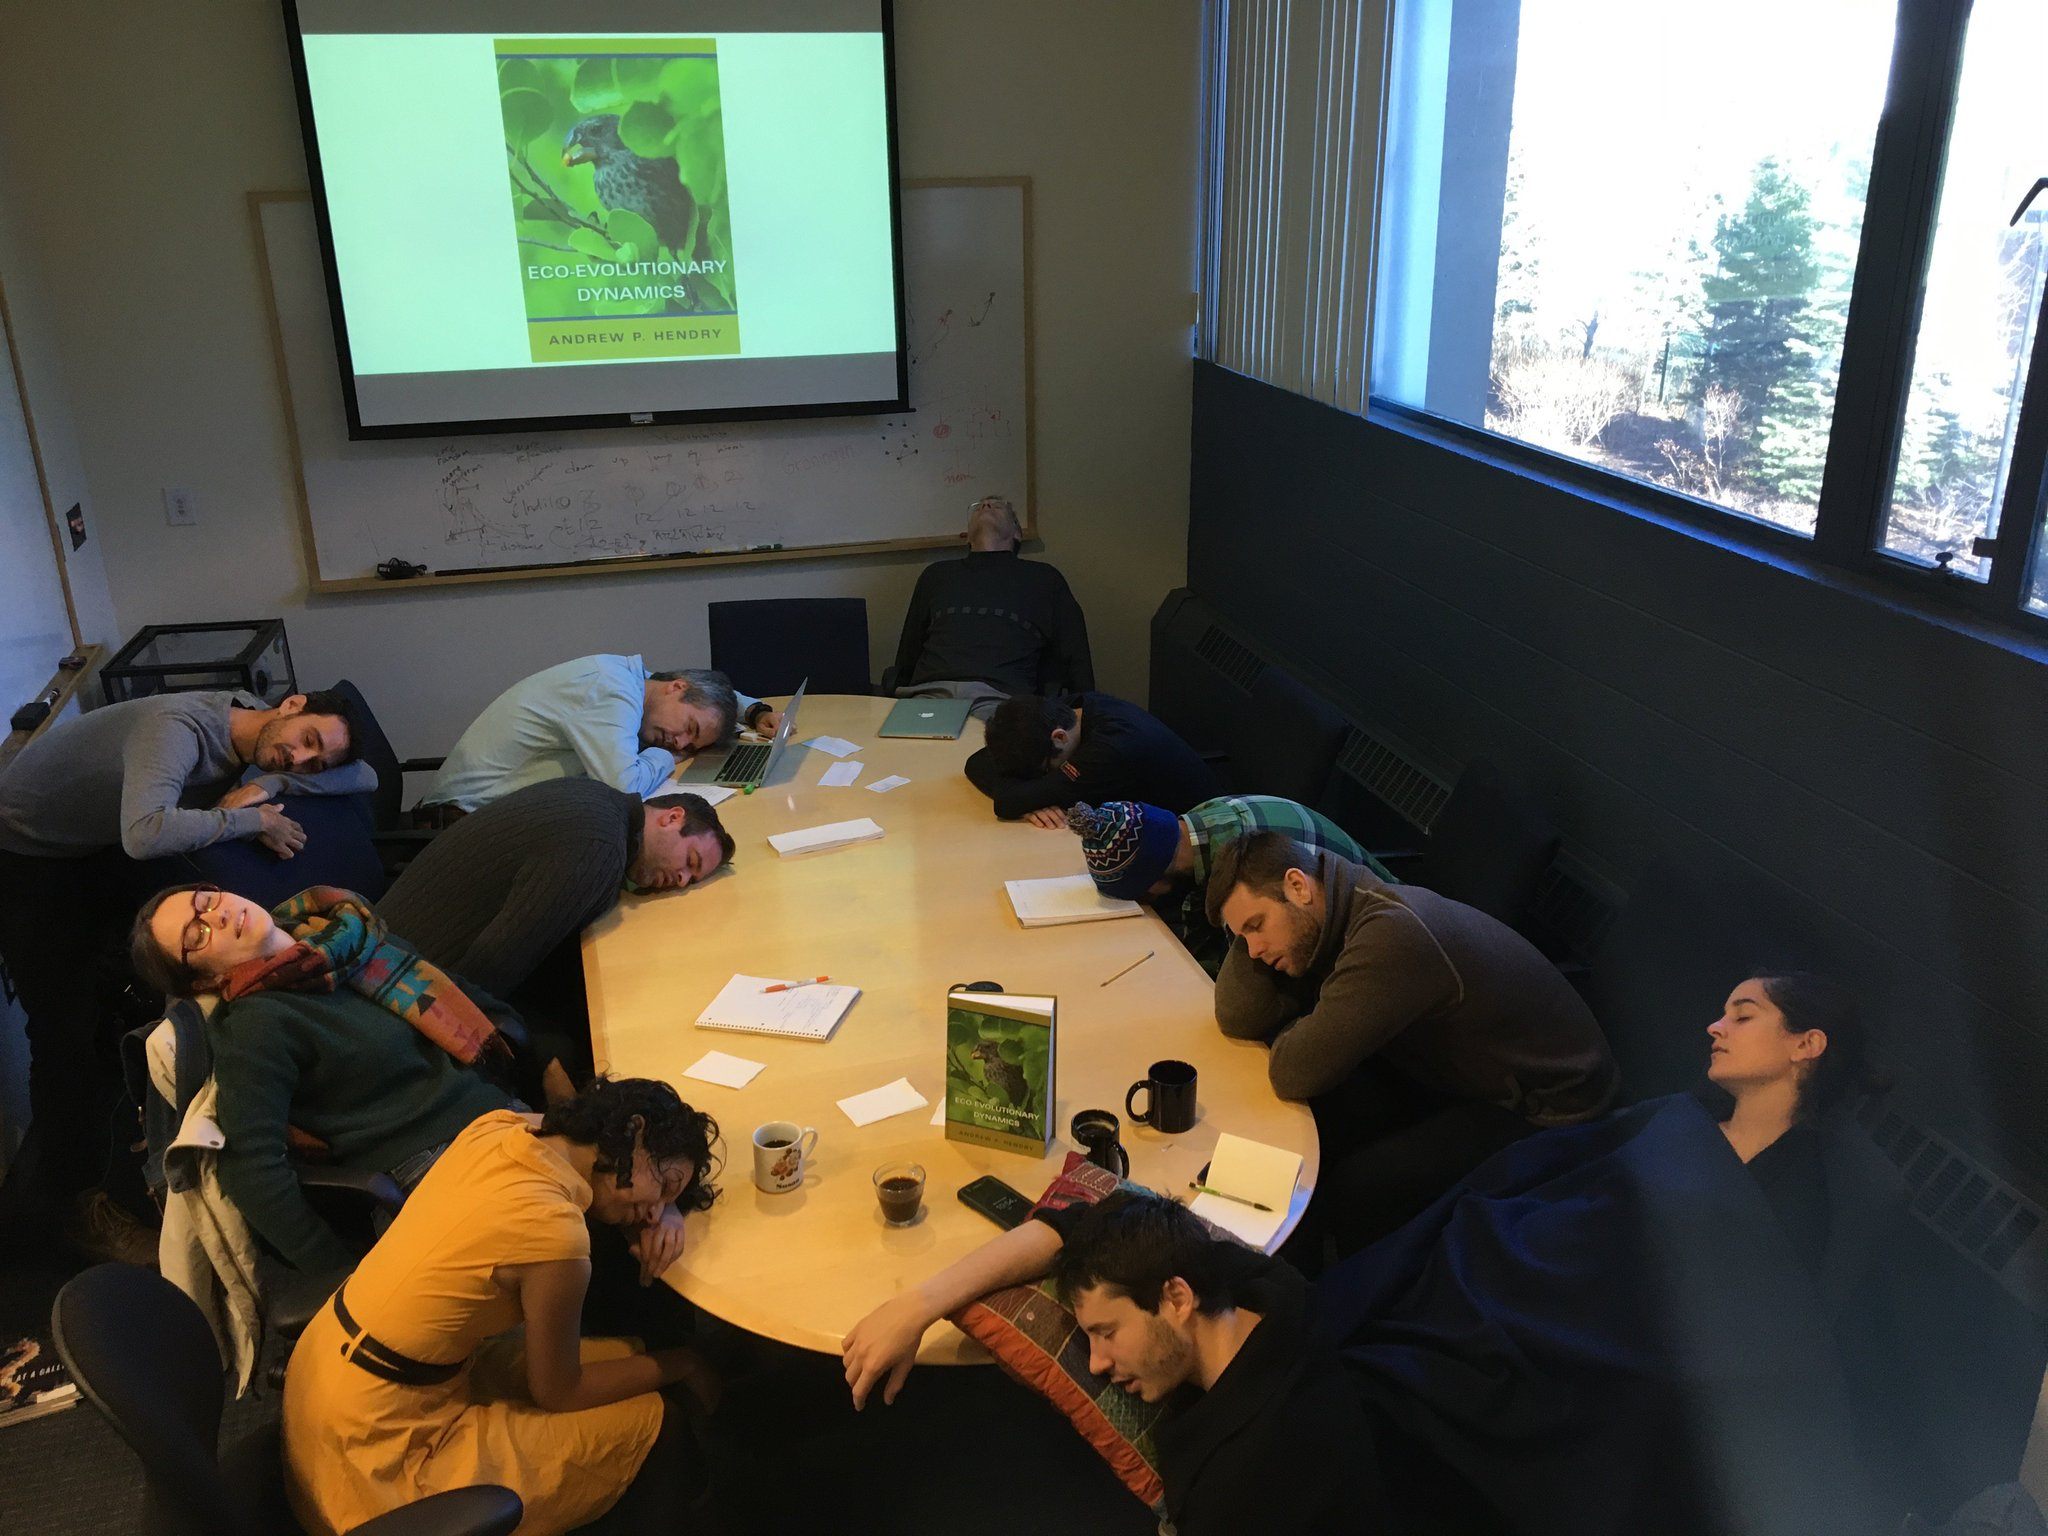 The @JLosos lab read @EcoEvoEvoEco's book today. Seemed great 'til the snoozes hit us! #PeopleWhoFellAsleepReadingMyBook  #NeedsMore #Anoles https://t.co/0NgDSxajg9